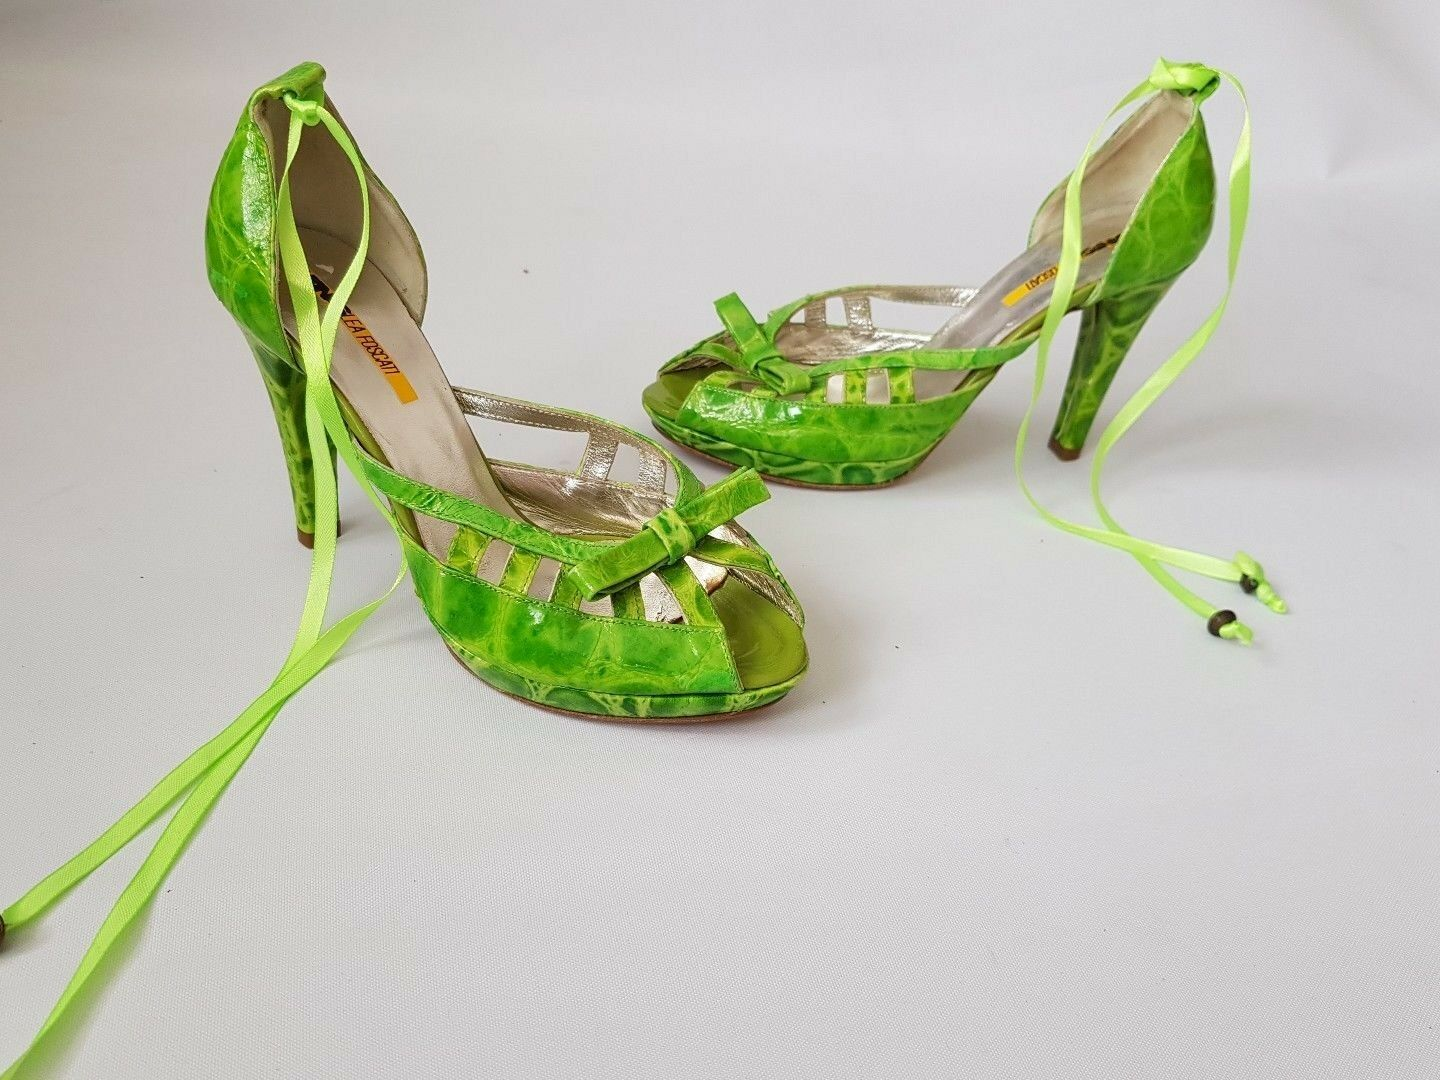 Women's MANAS LEA FOSCATI sandals lime green color size UK 3 BNWOB